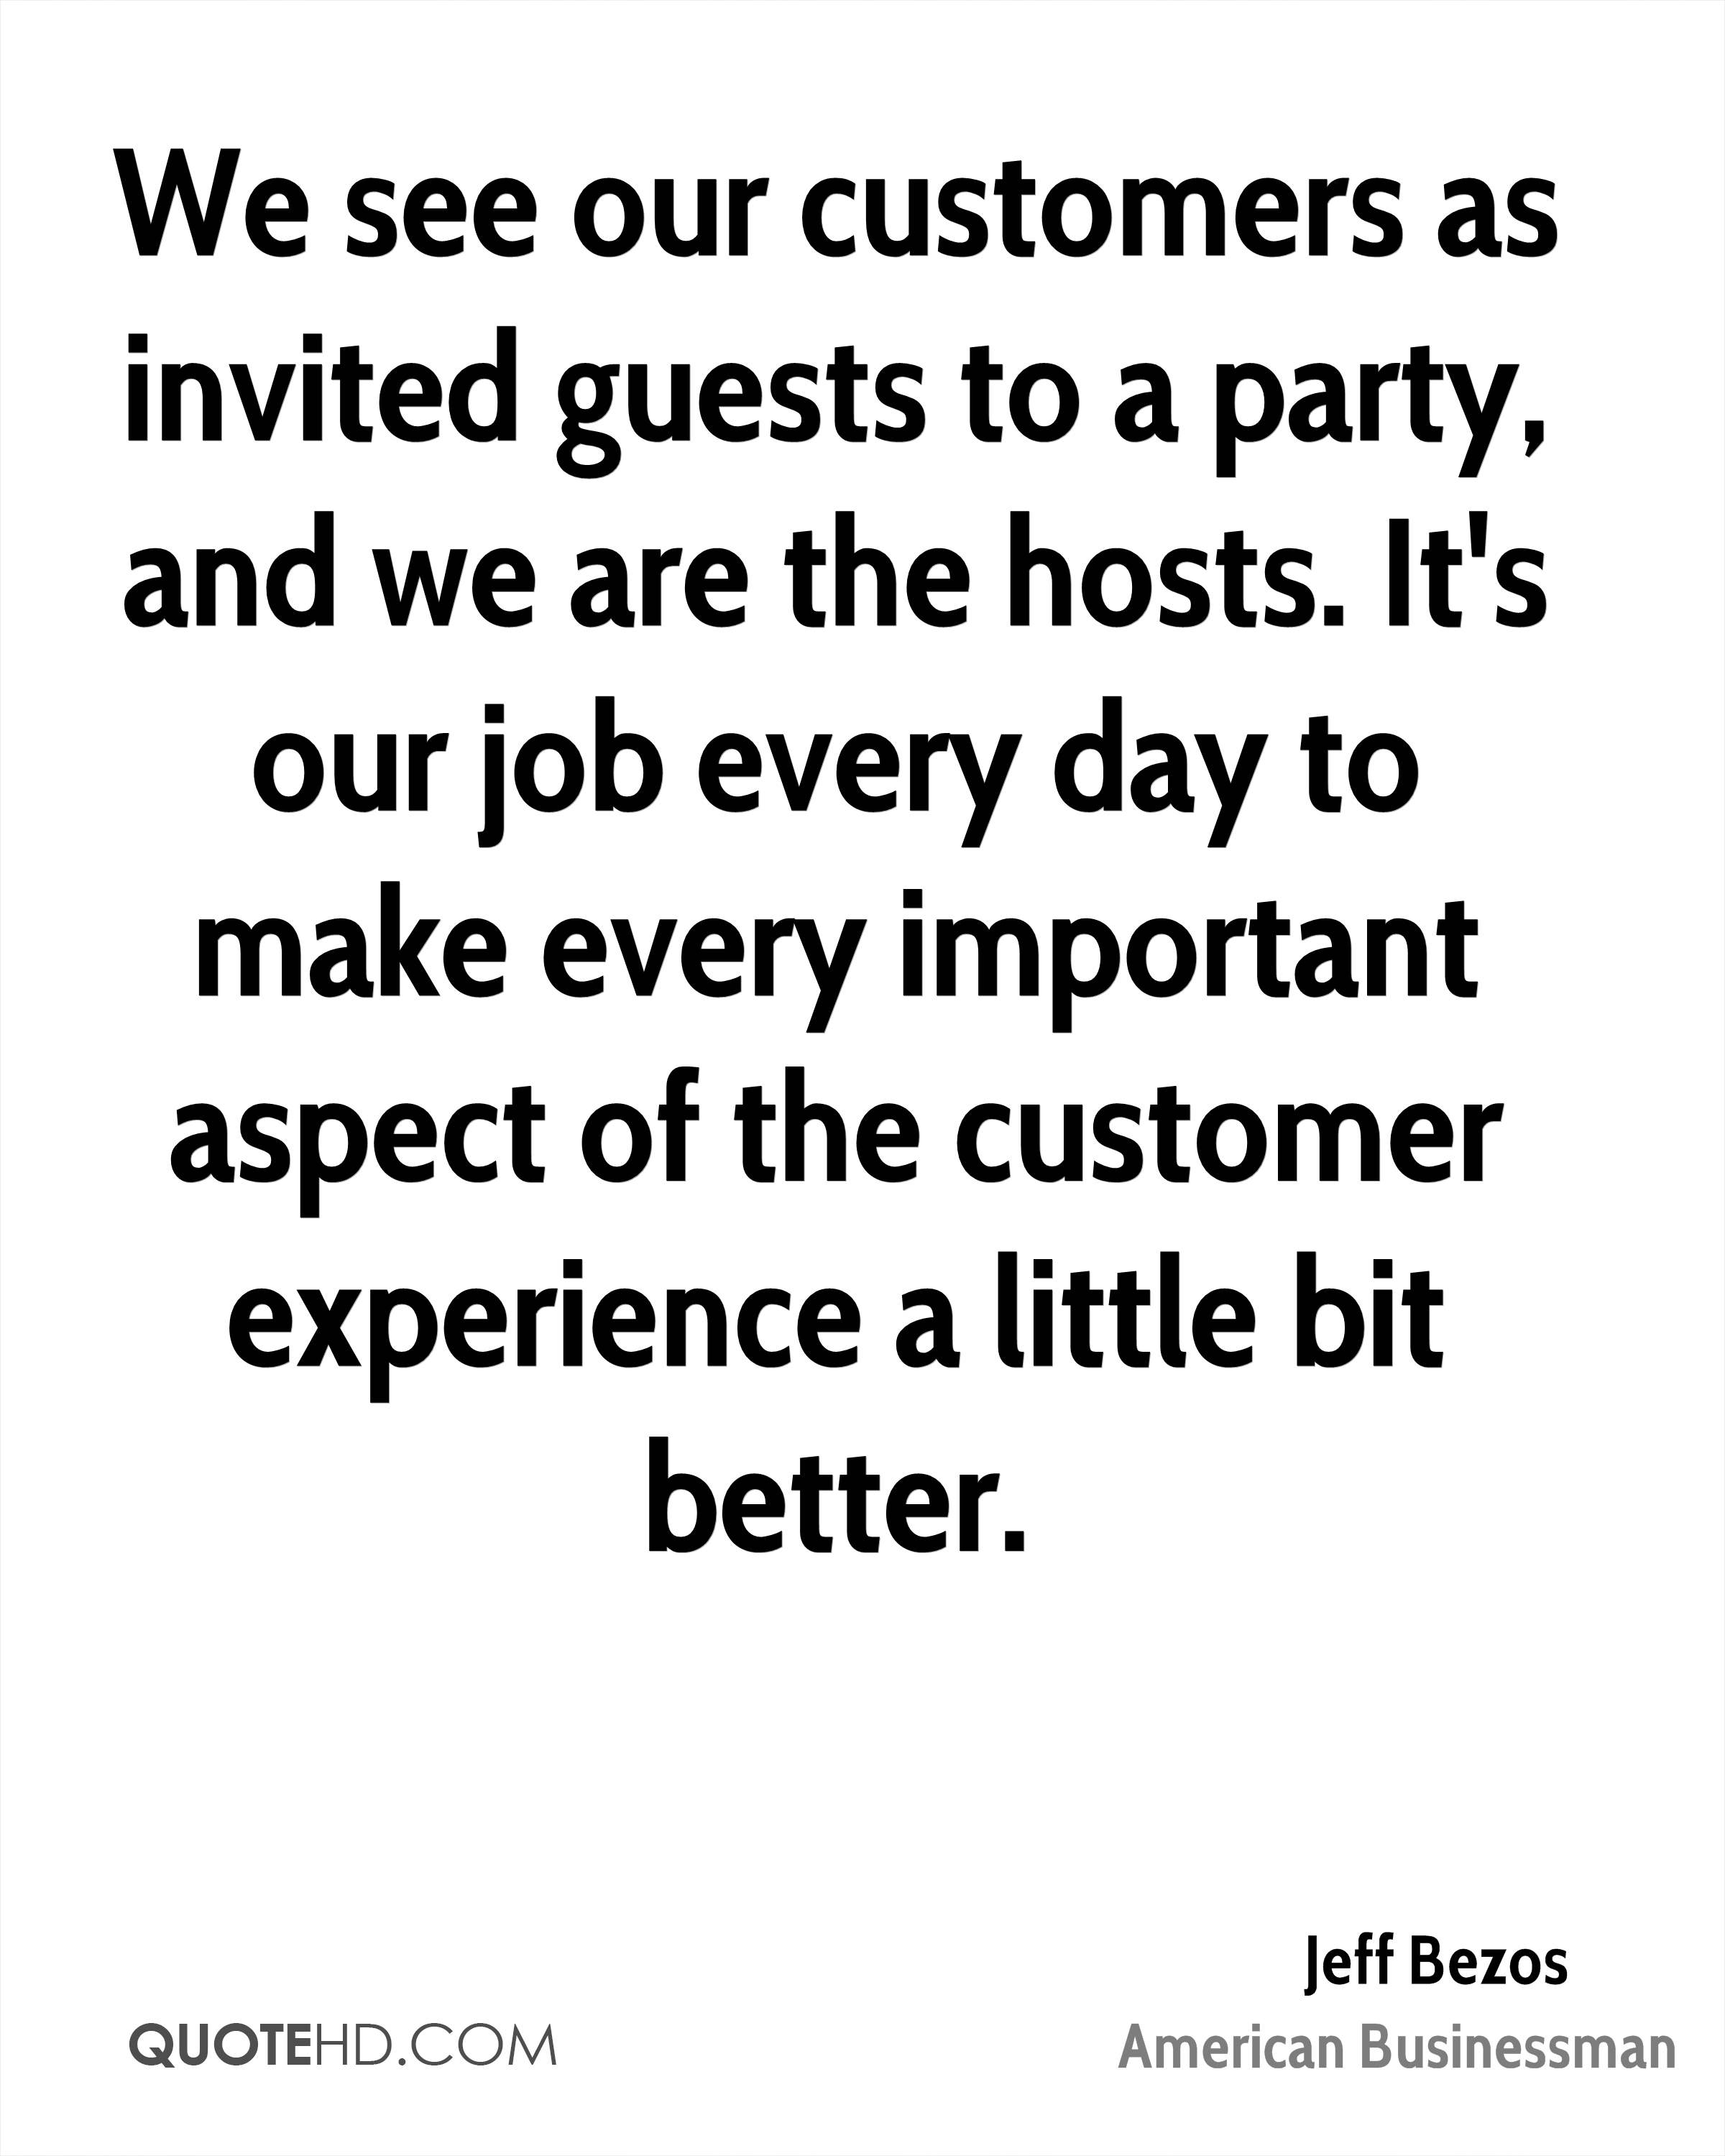 We See Our Customers As Invited Guests To A Party And Are The Hosts